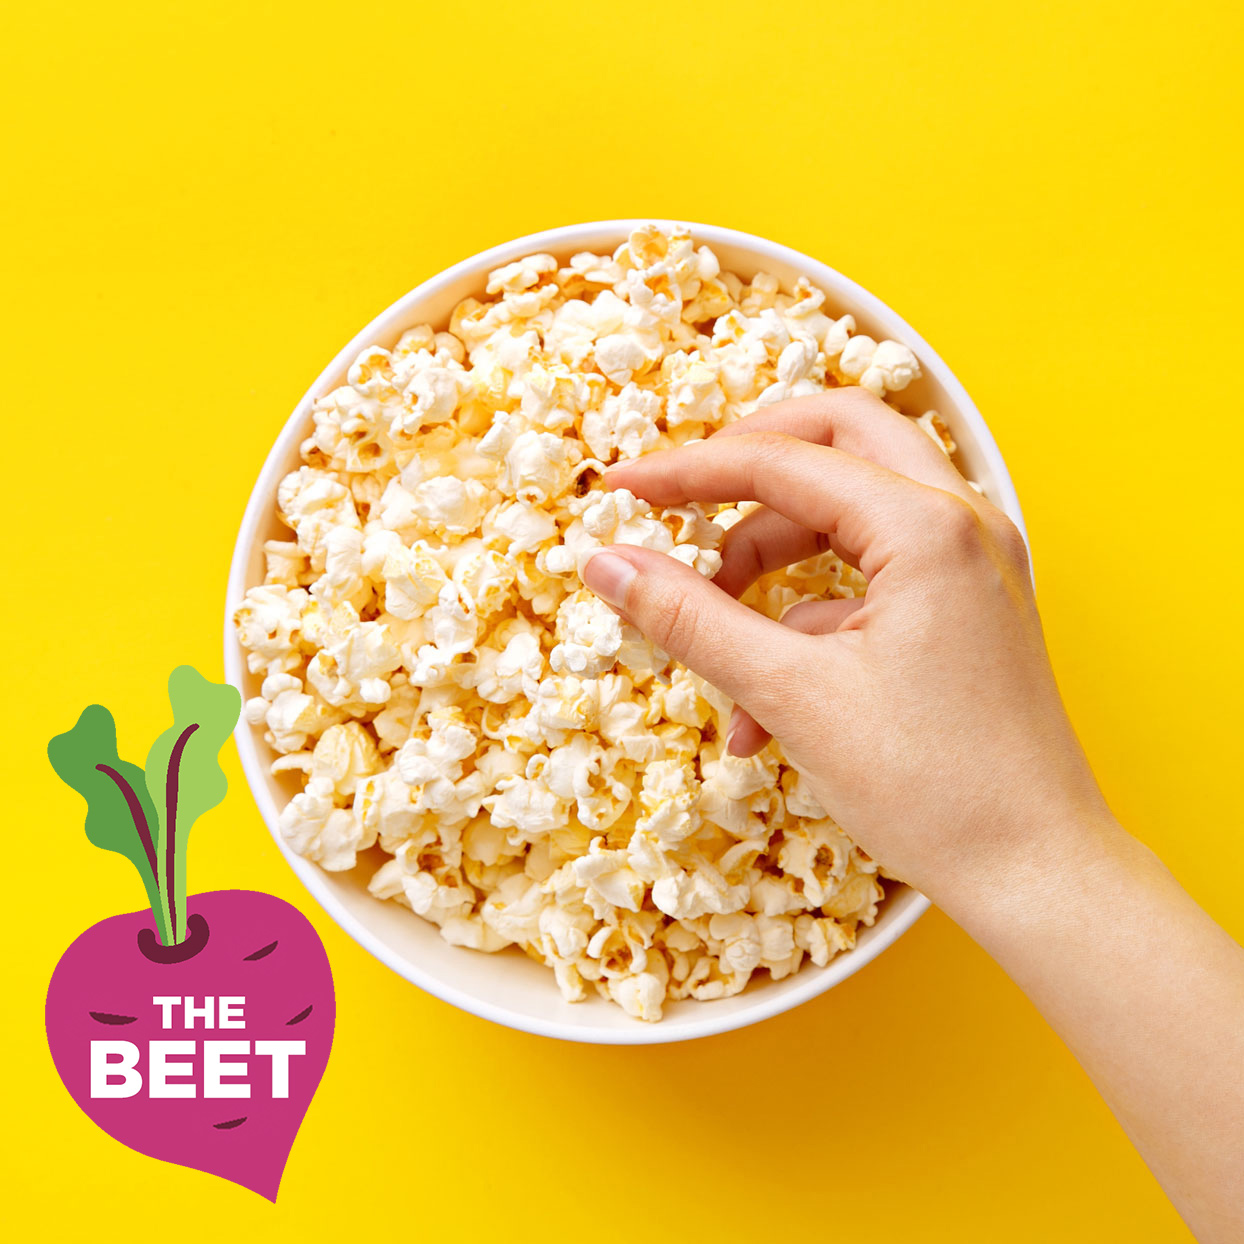 Hand getting popcorn from a bowl